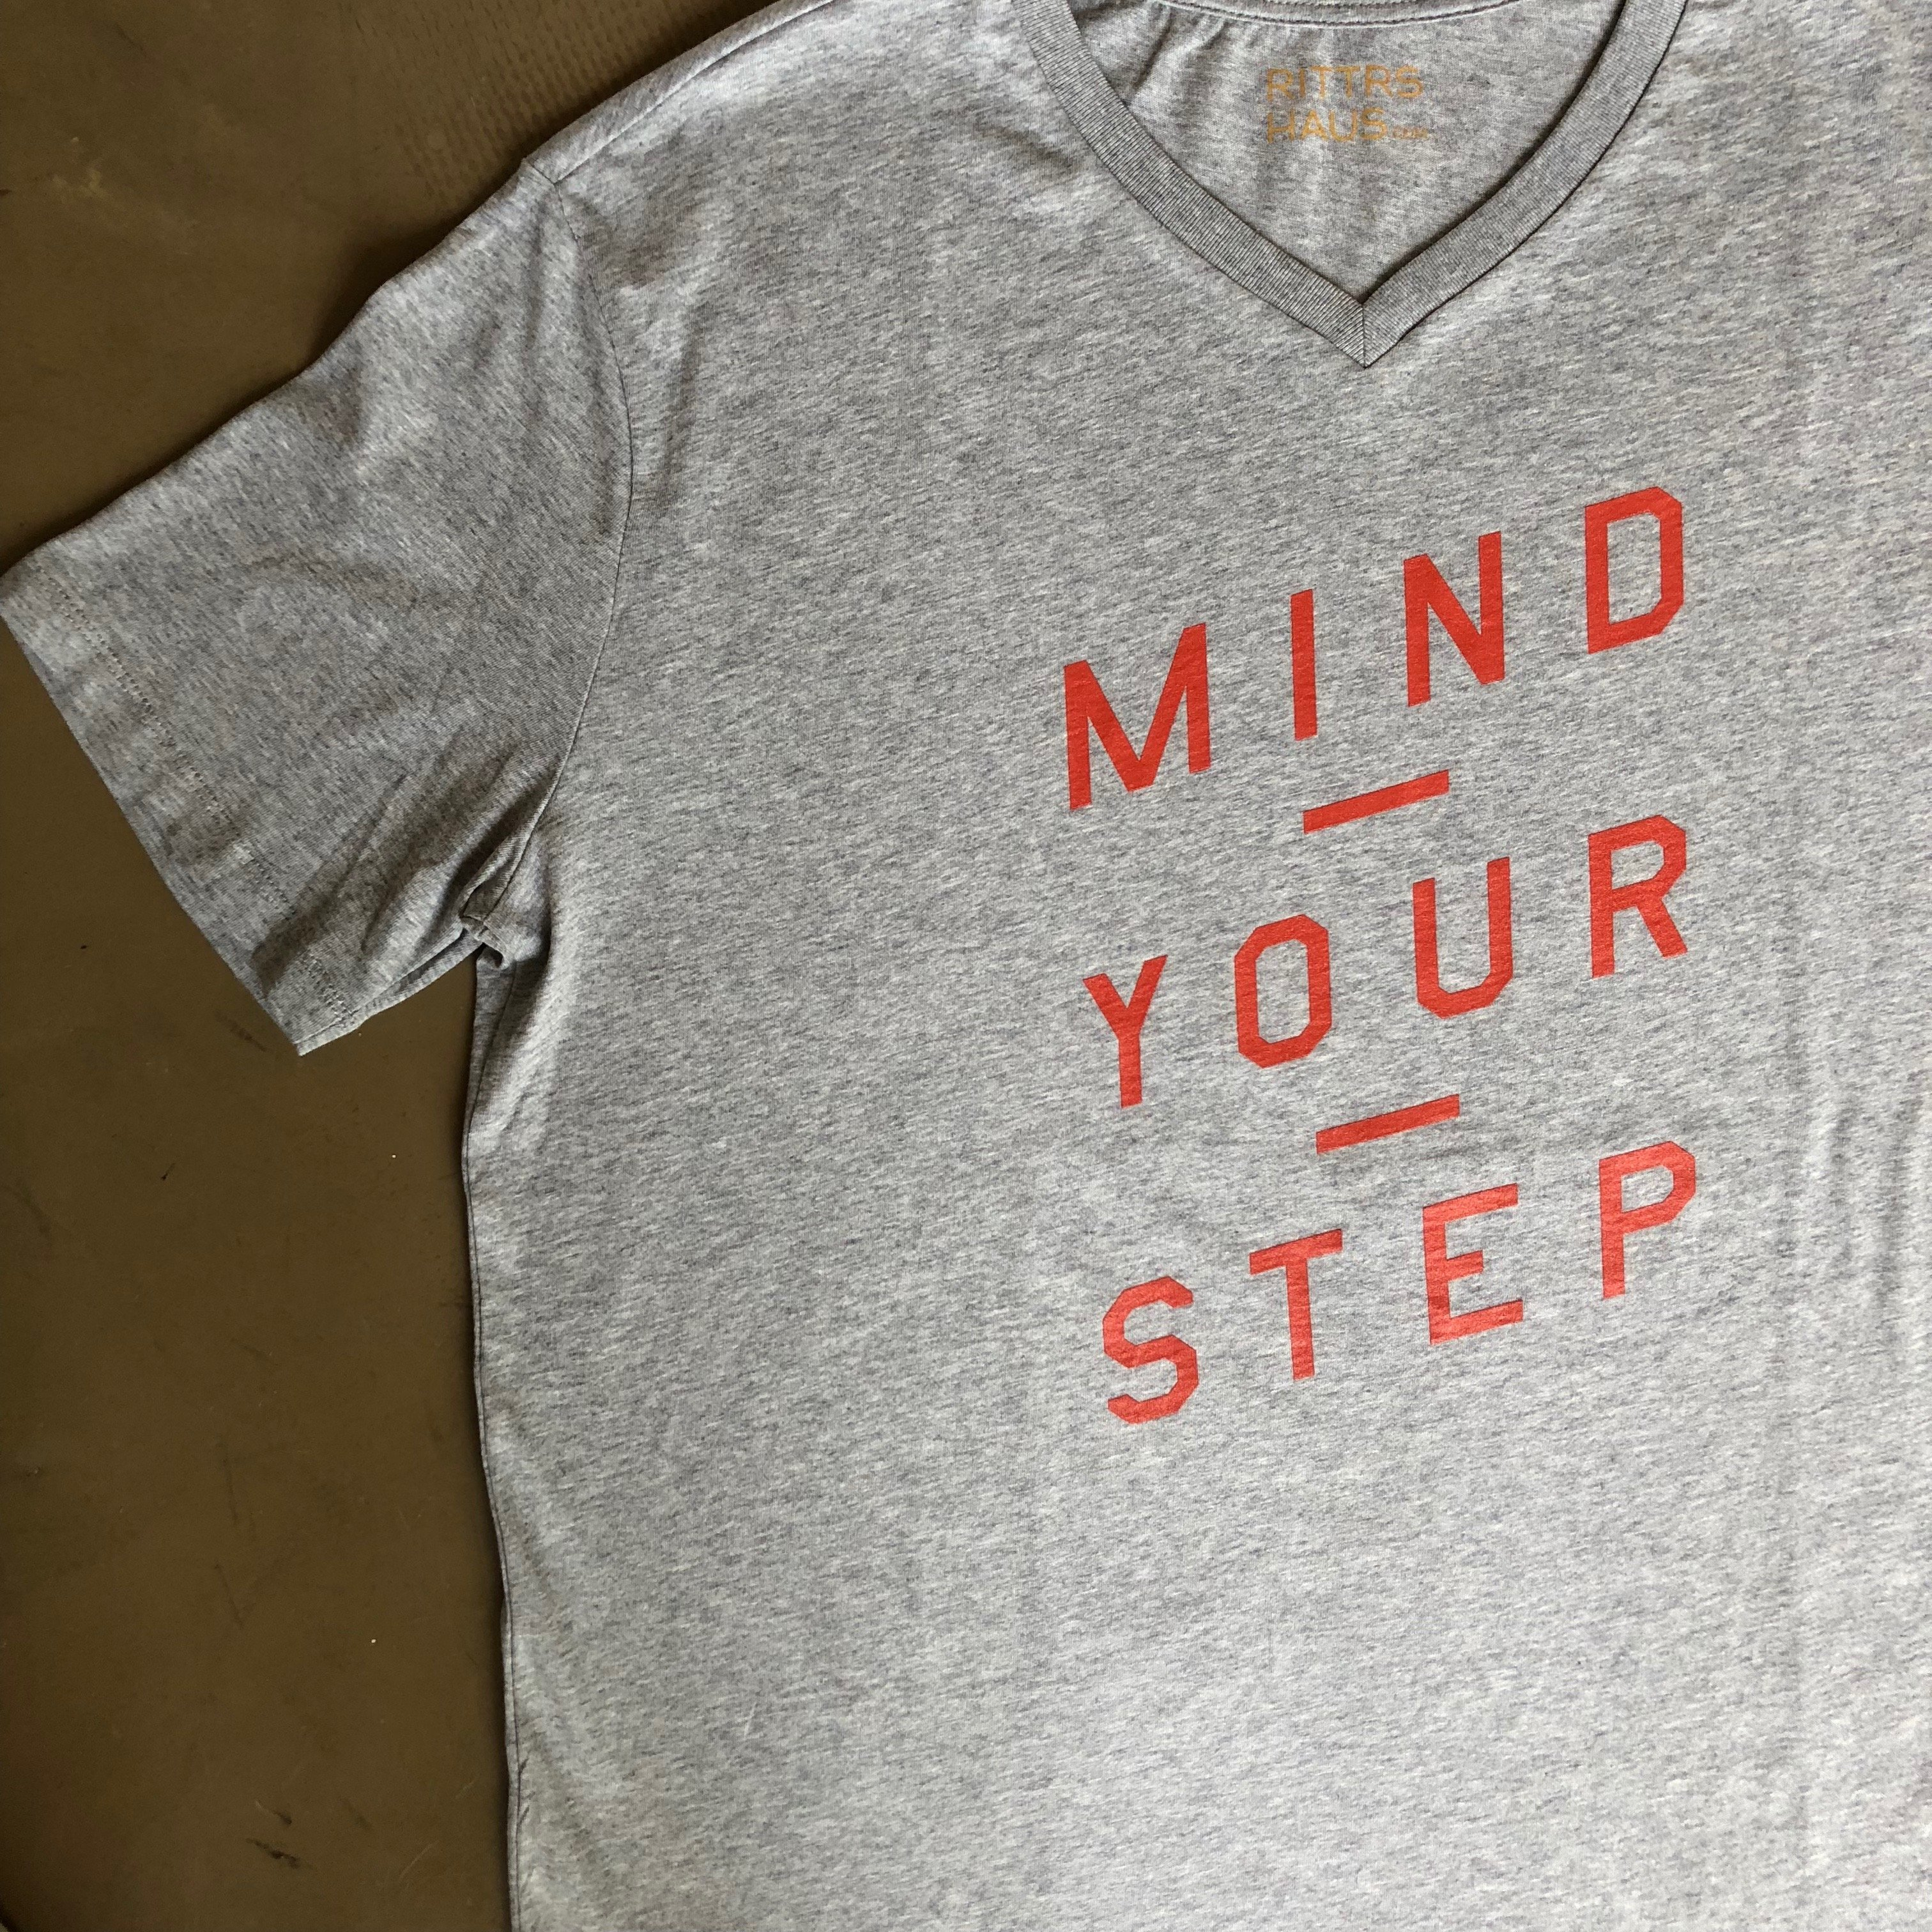 Unisex T-SHIRT, Mind Your Step from RITTRSHAUS